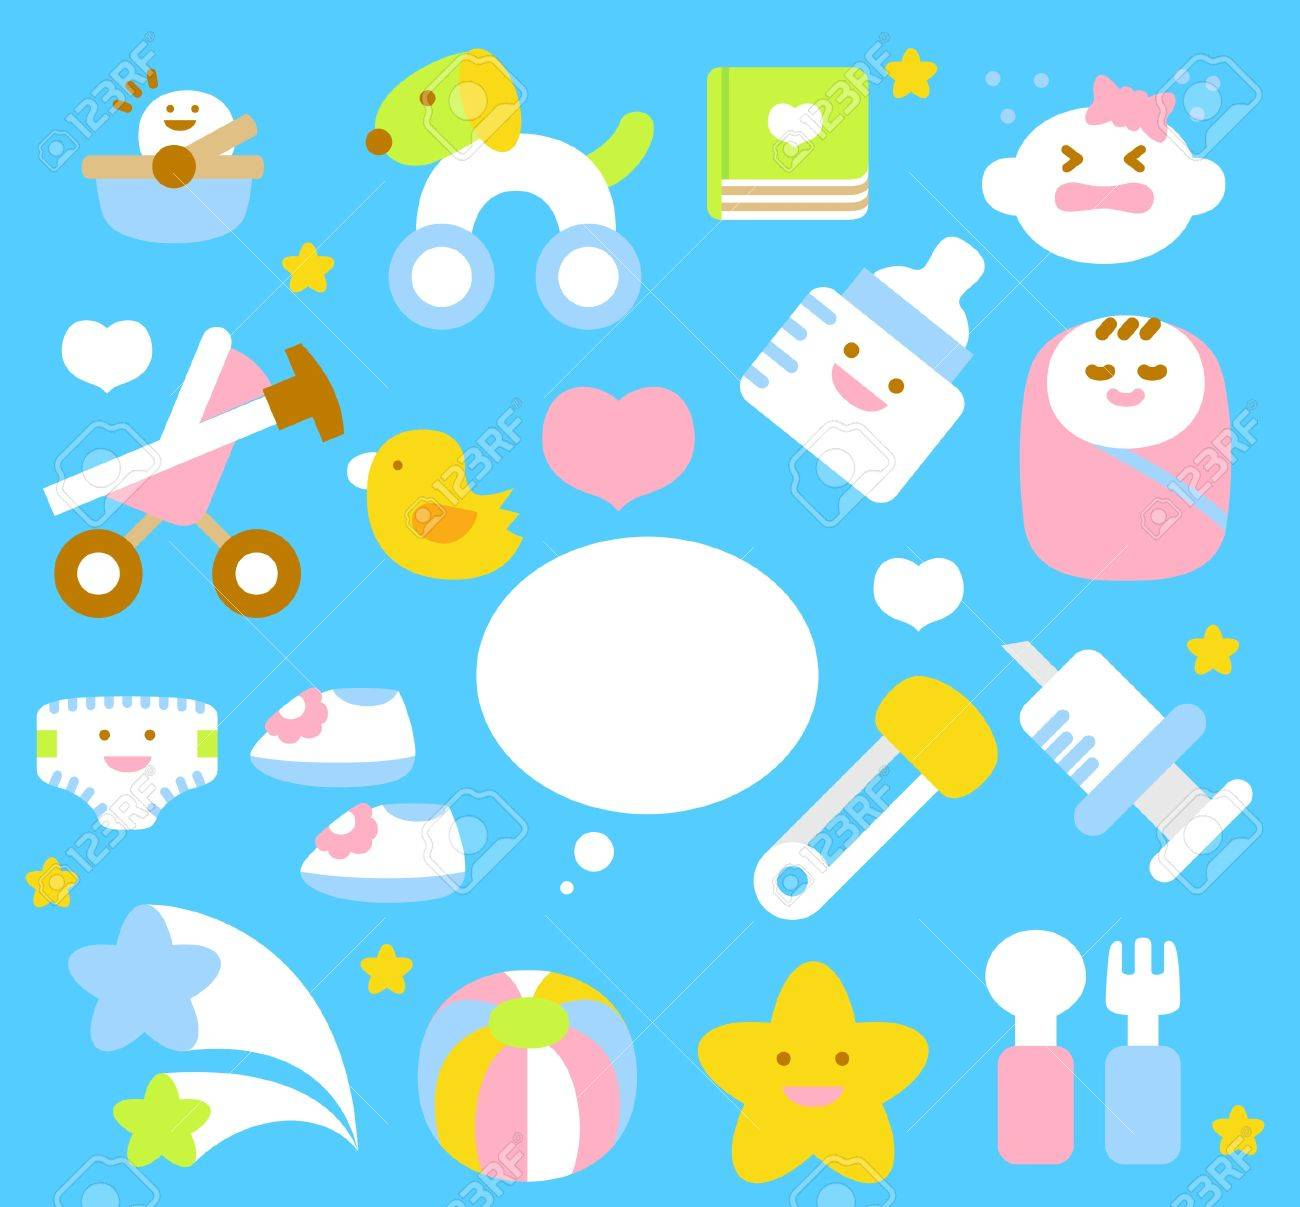 simple baby icon collection Stock Vector - 11181152